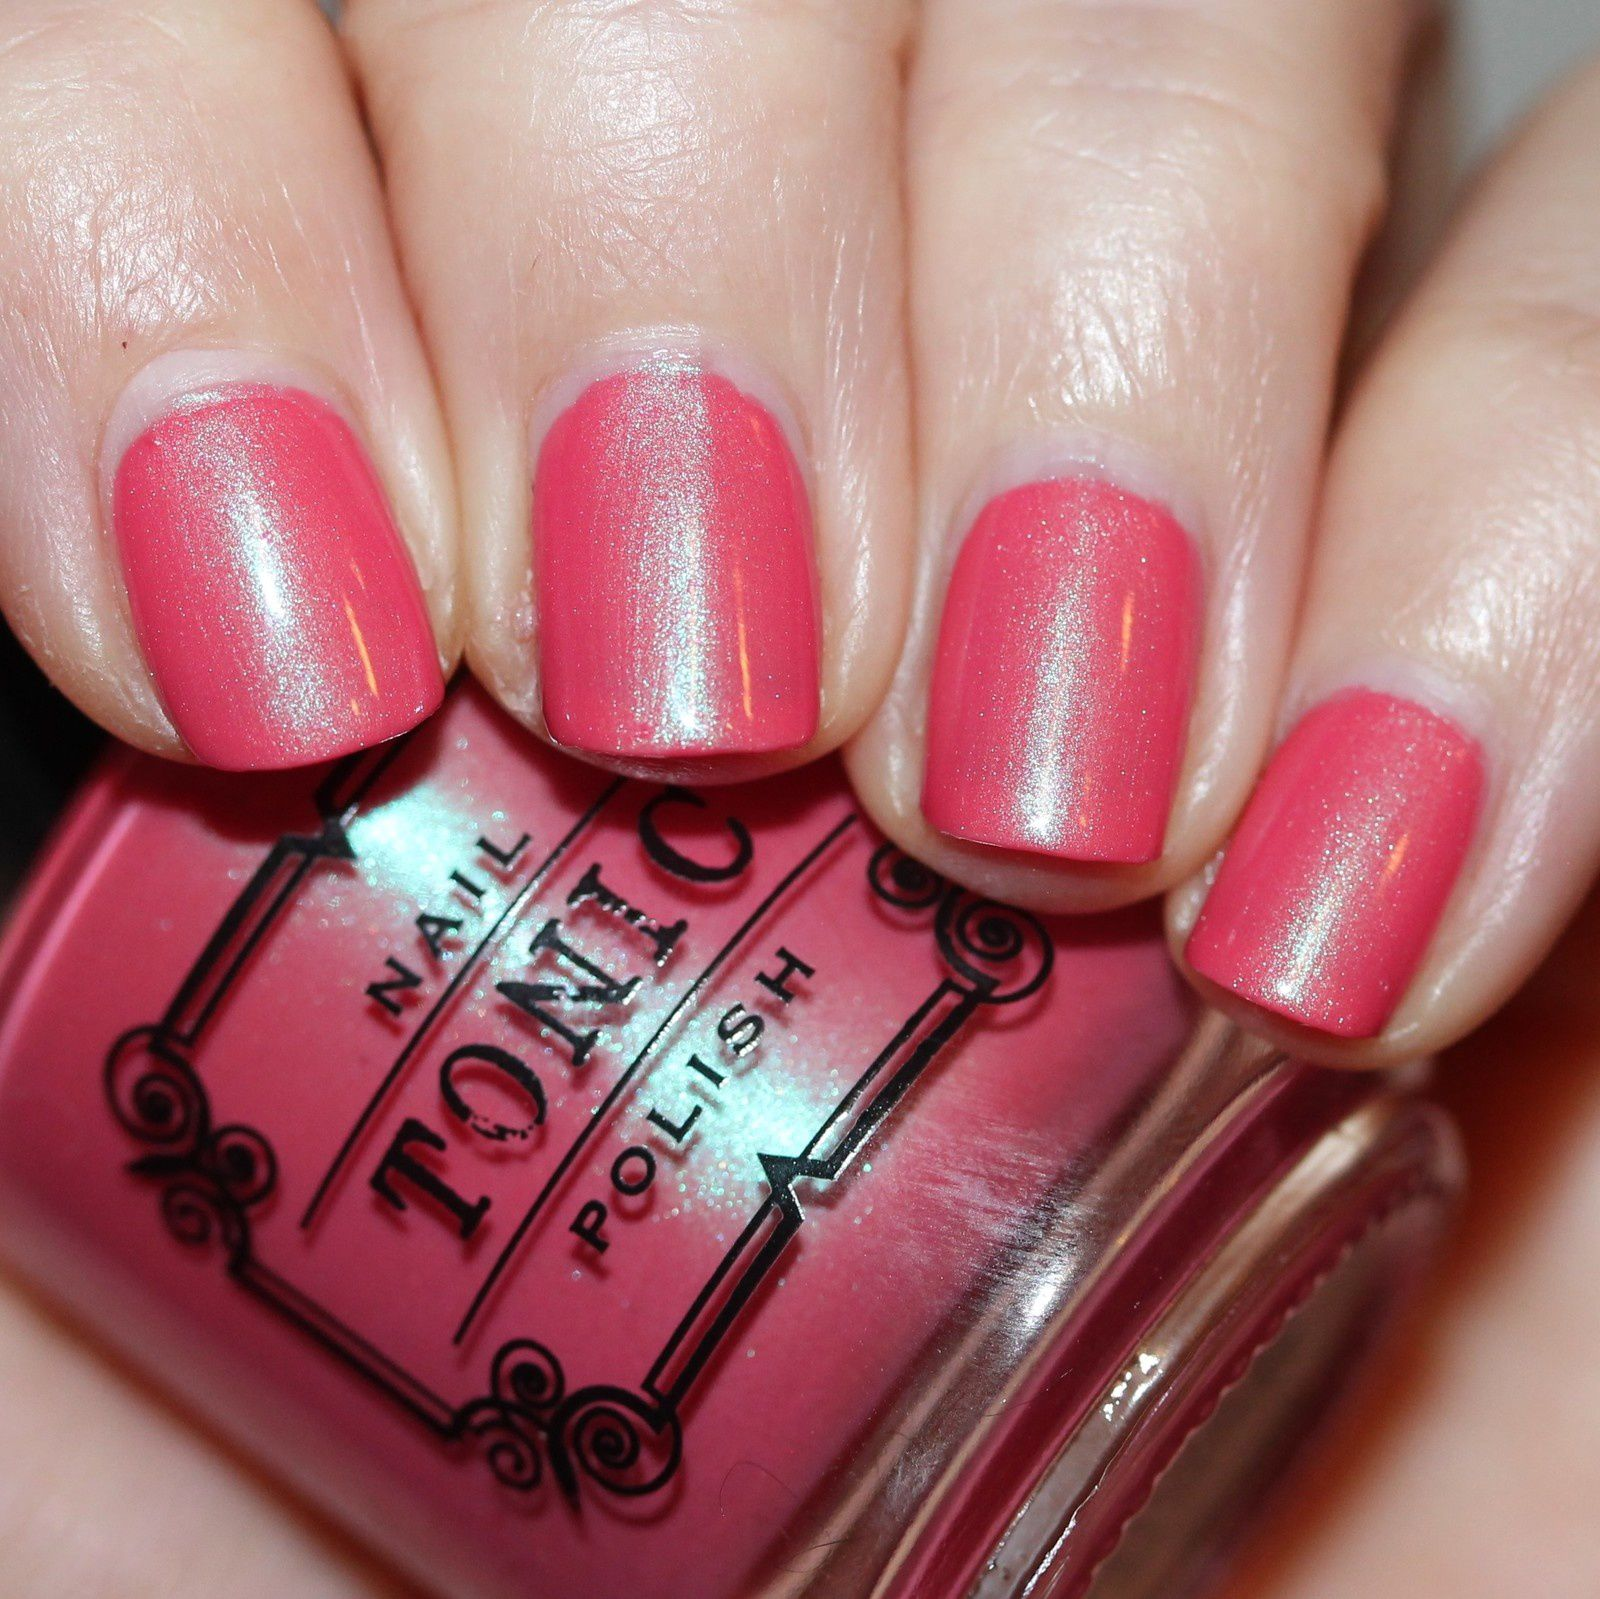 Essie Fill The Gap Base Coat / Tonic Polish Endless Shrimp / Essie Gel Top Coat